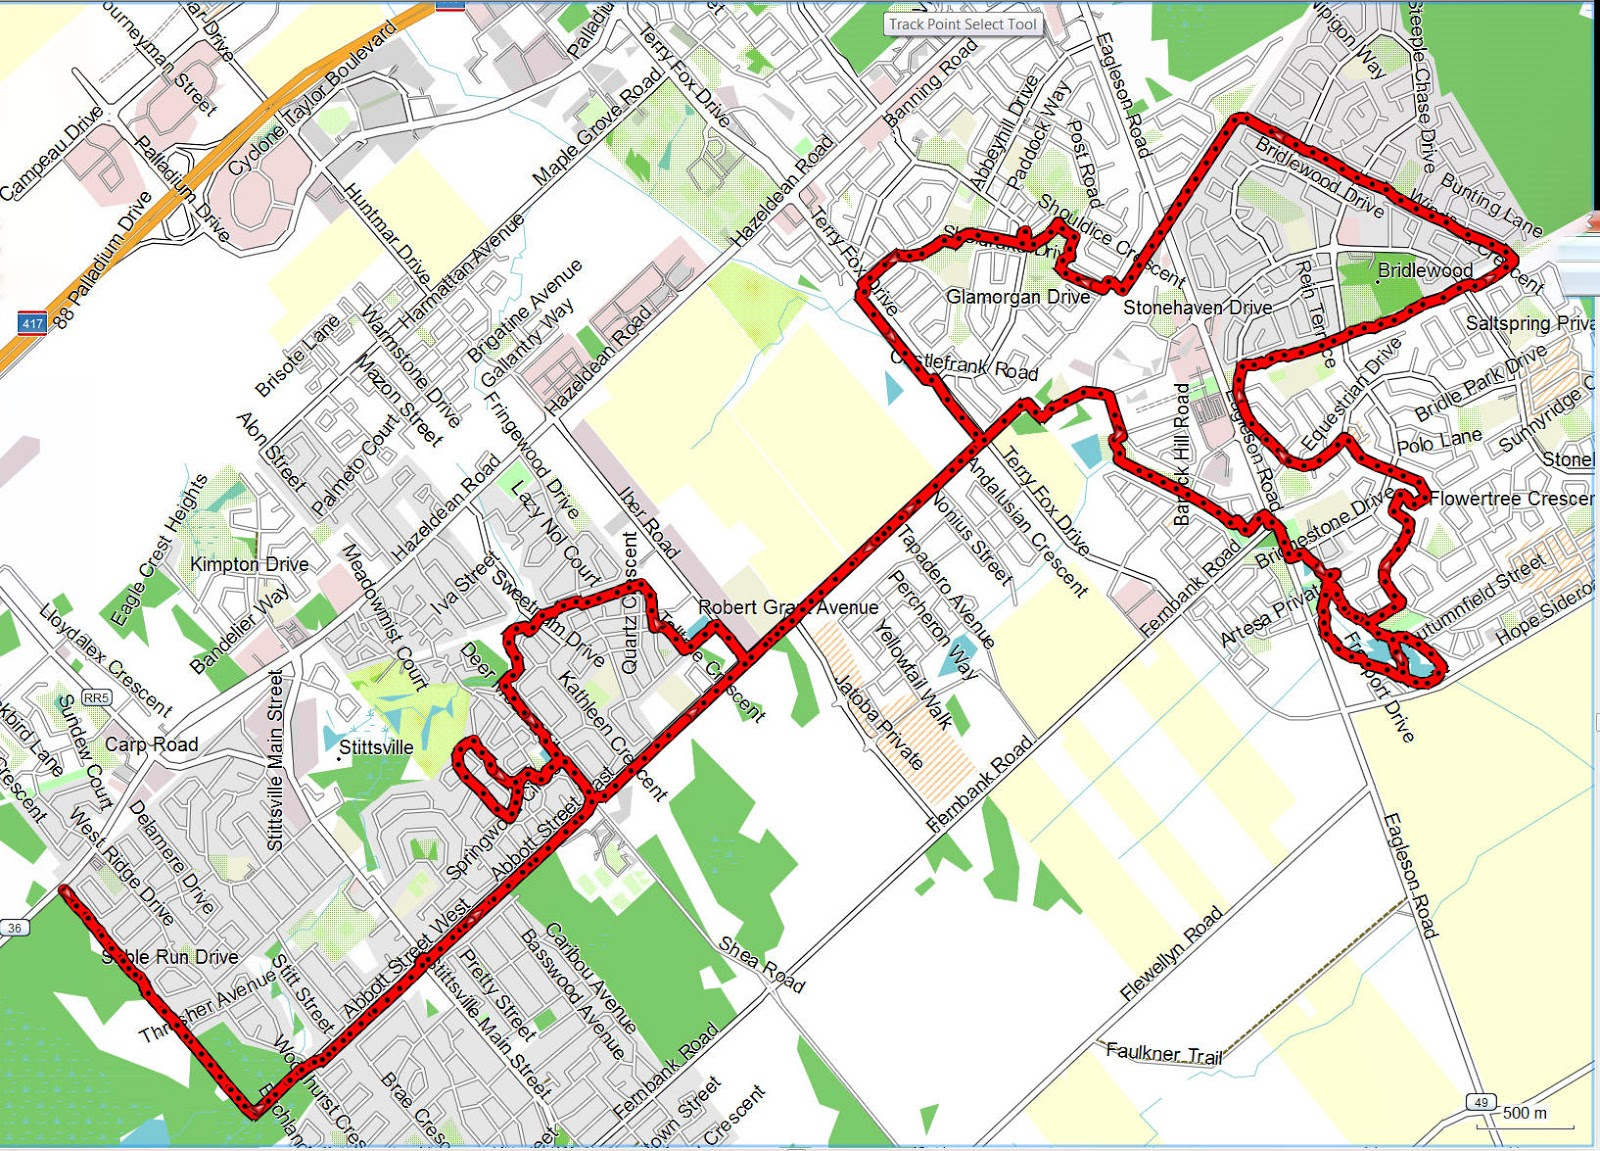 Richard's GPS Trail Maps: Bridlewood to Ssville Paths ... on laura secord map, fred hutchinson map, samuel de champlain map, mother teresa map,